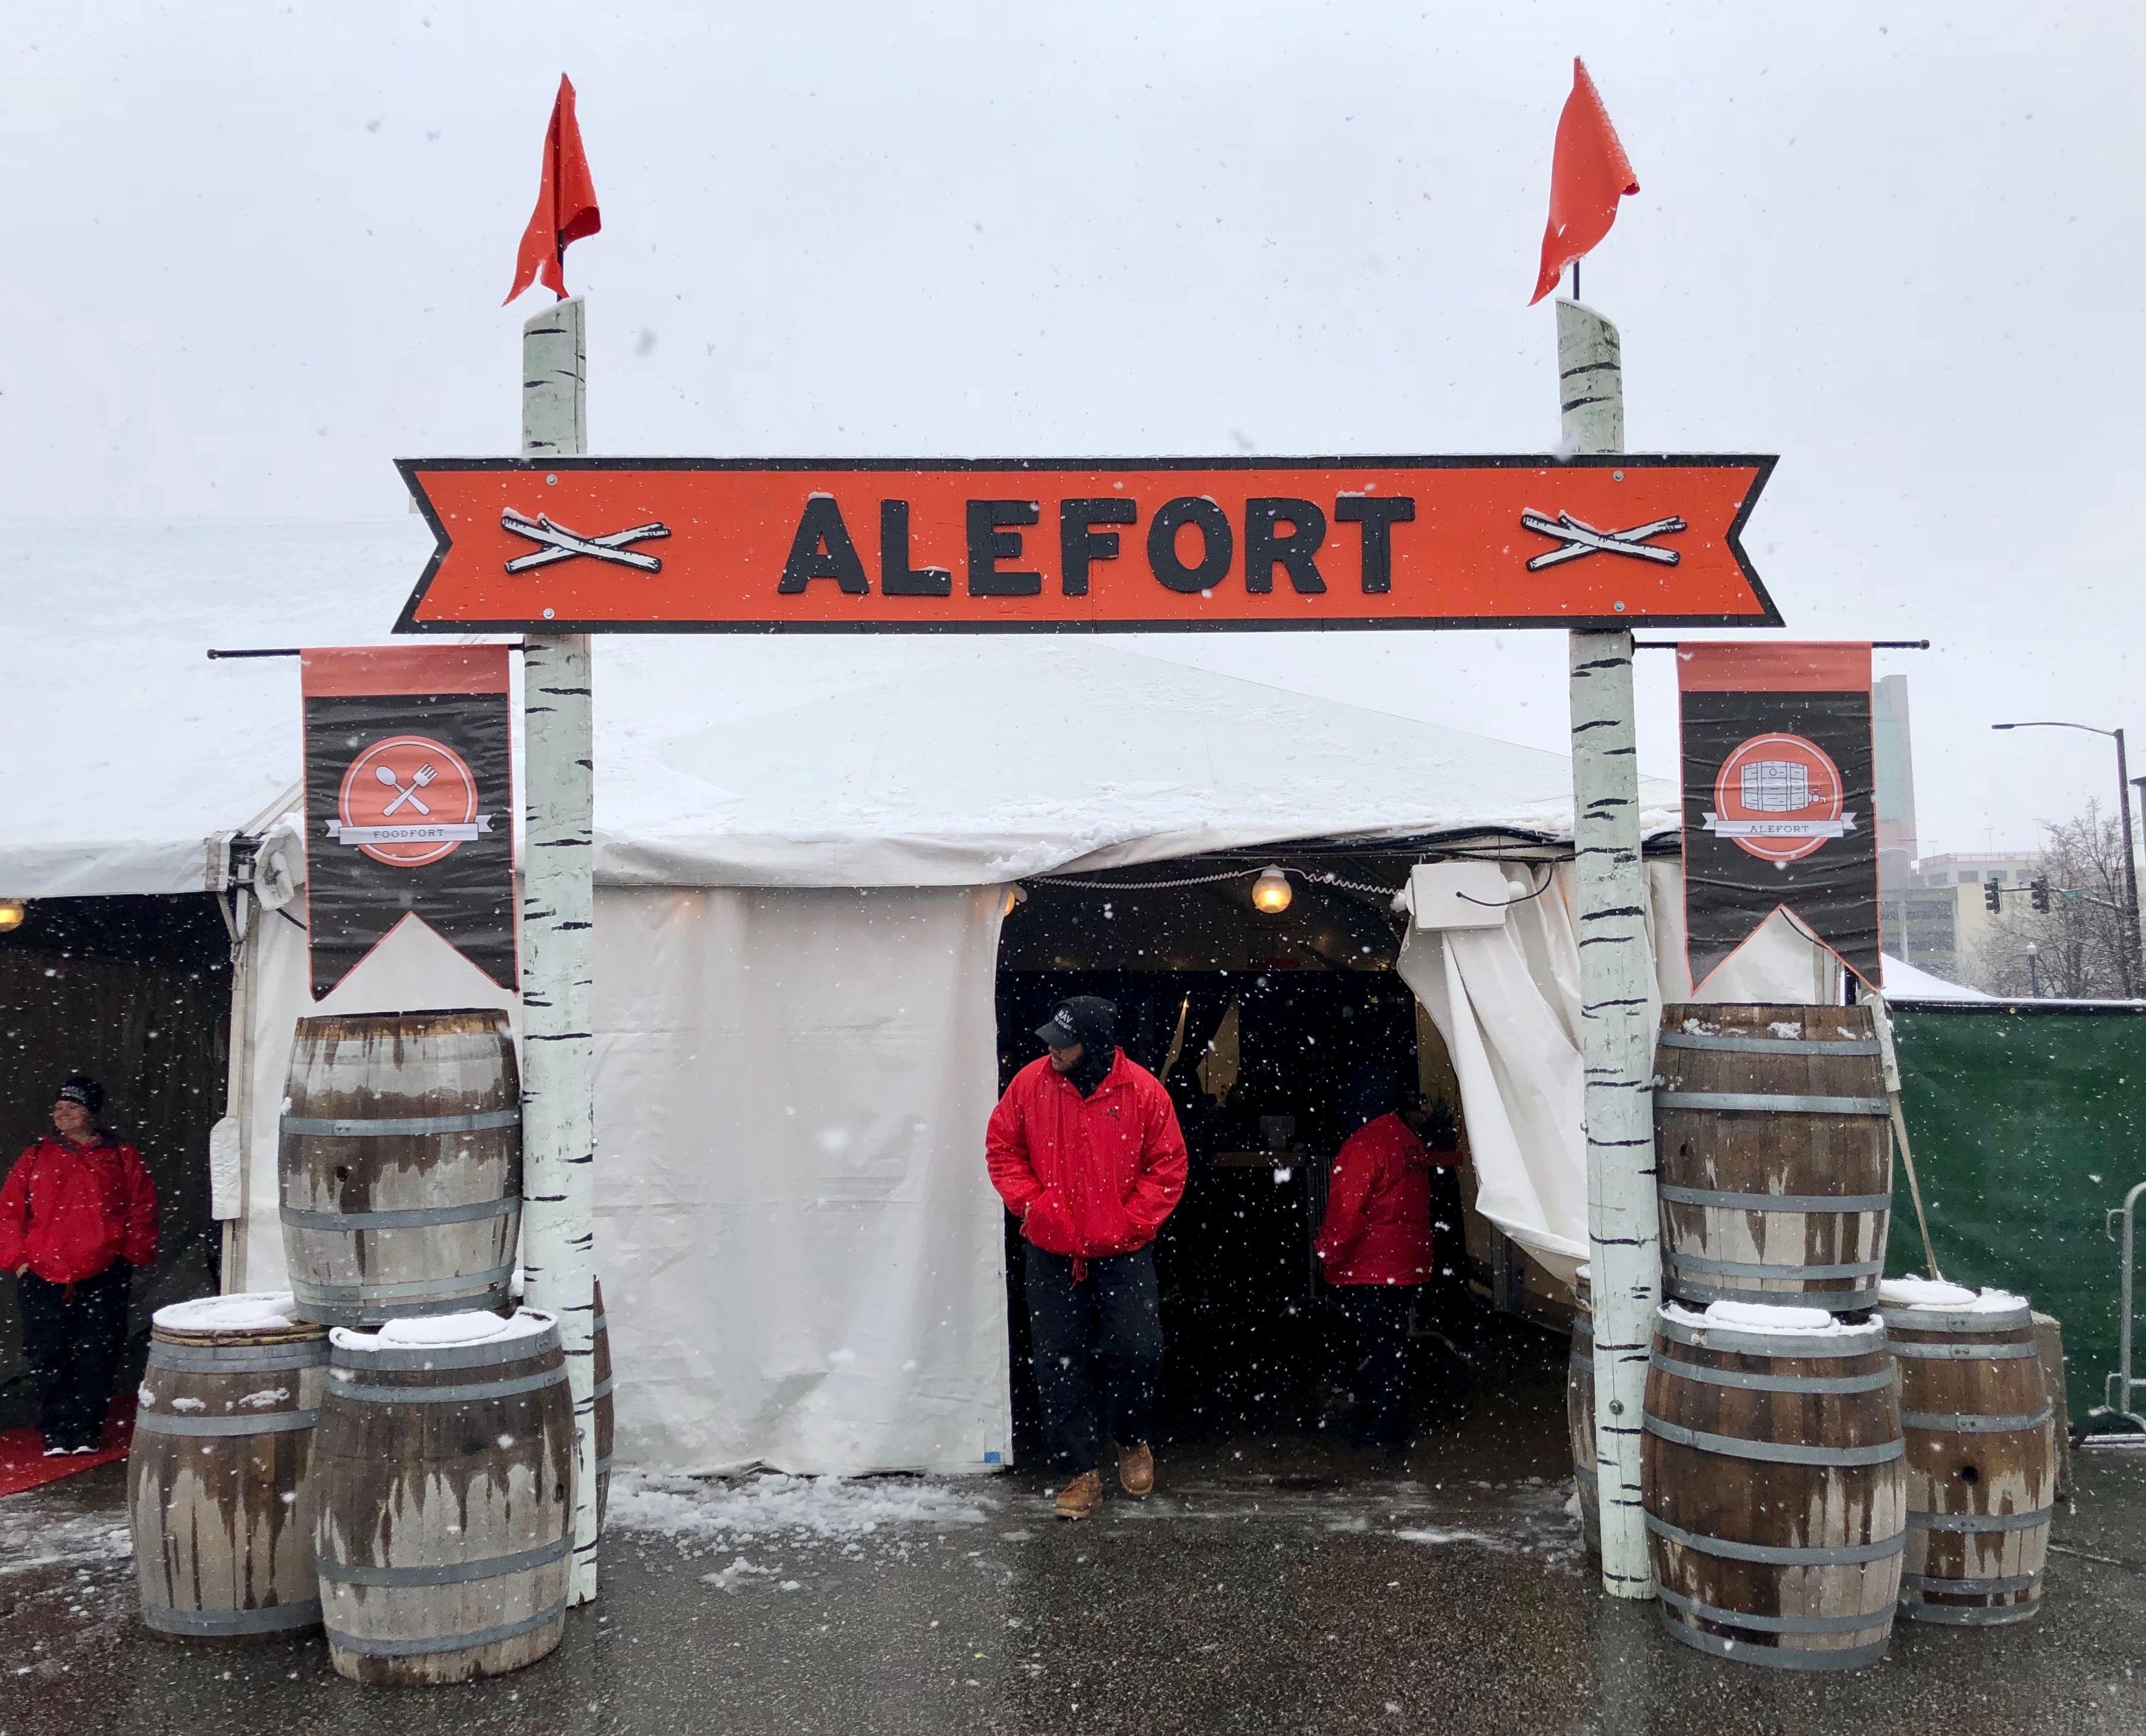 The final day of Alefort saw some snow before the sun came out and melted it all.